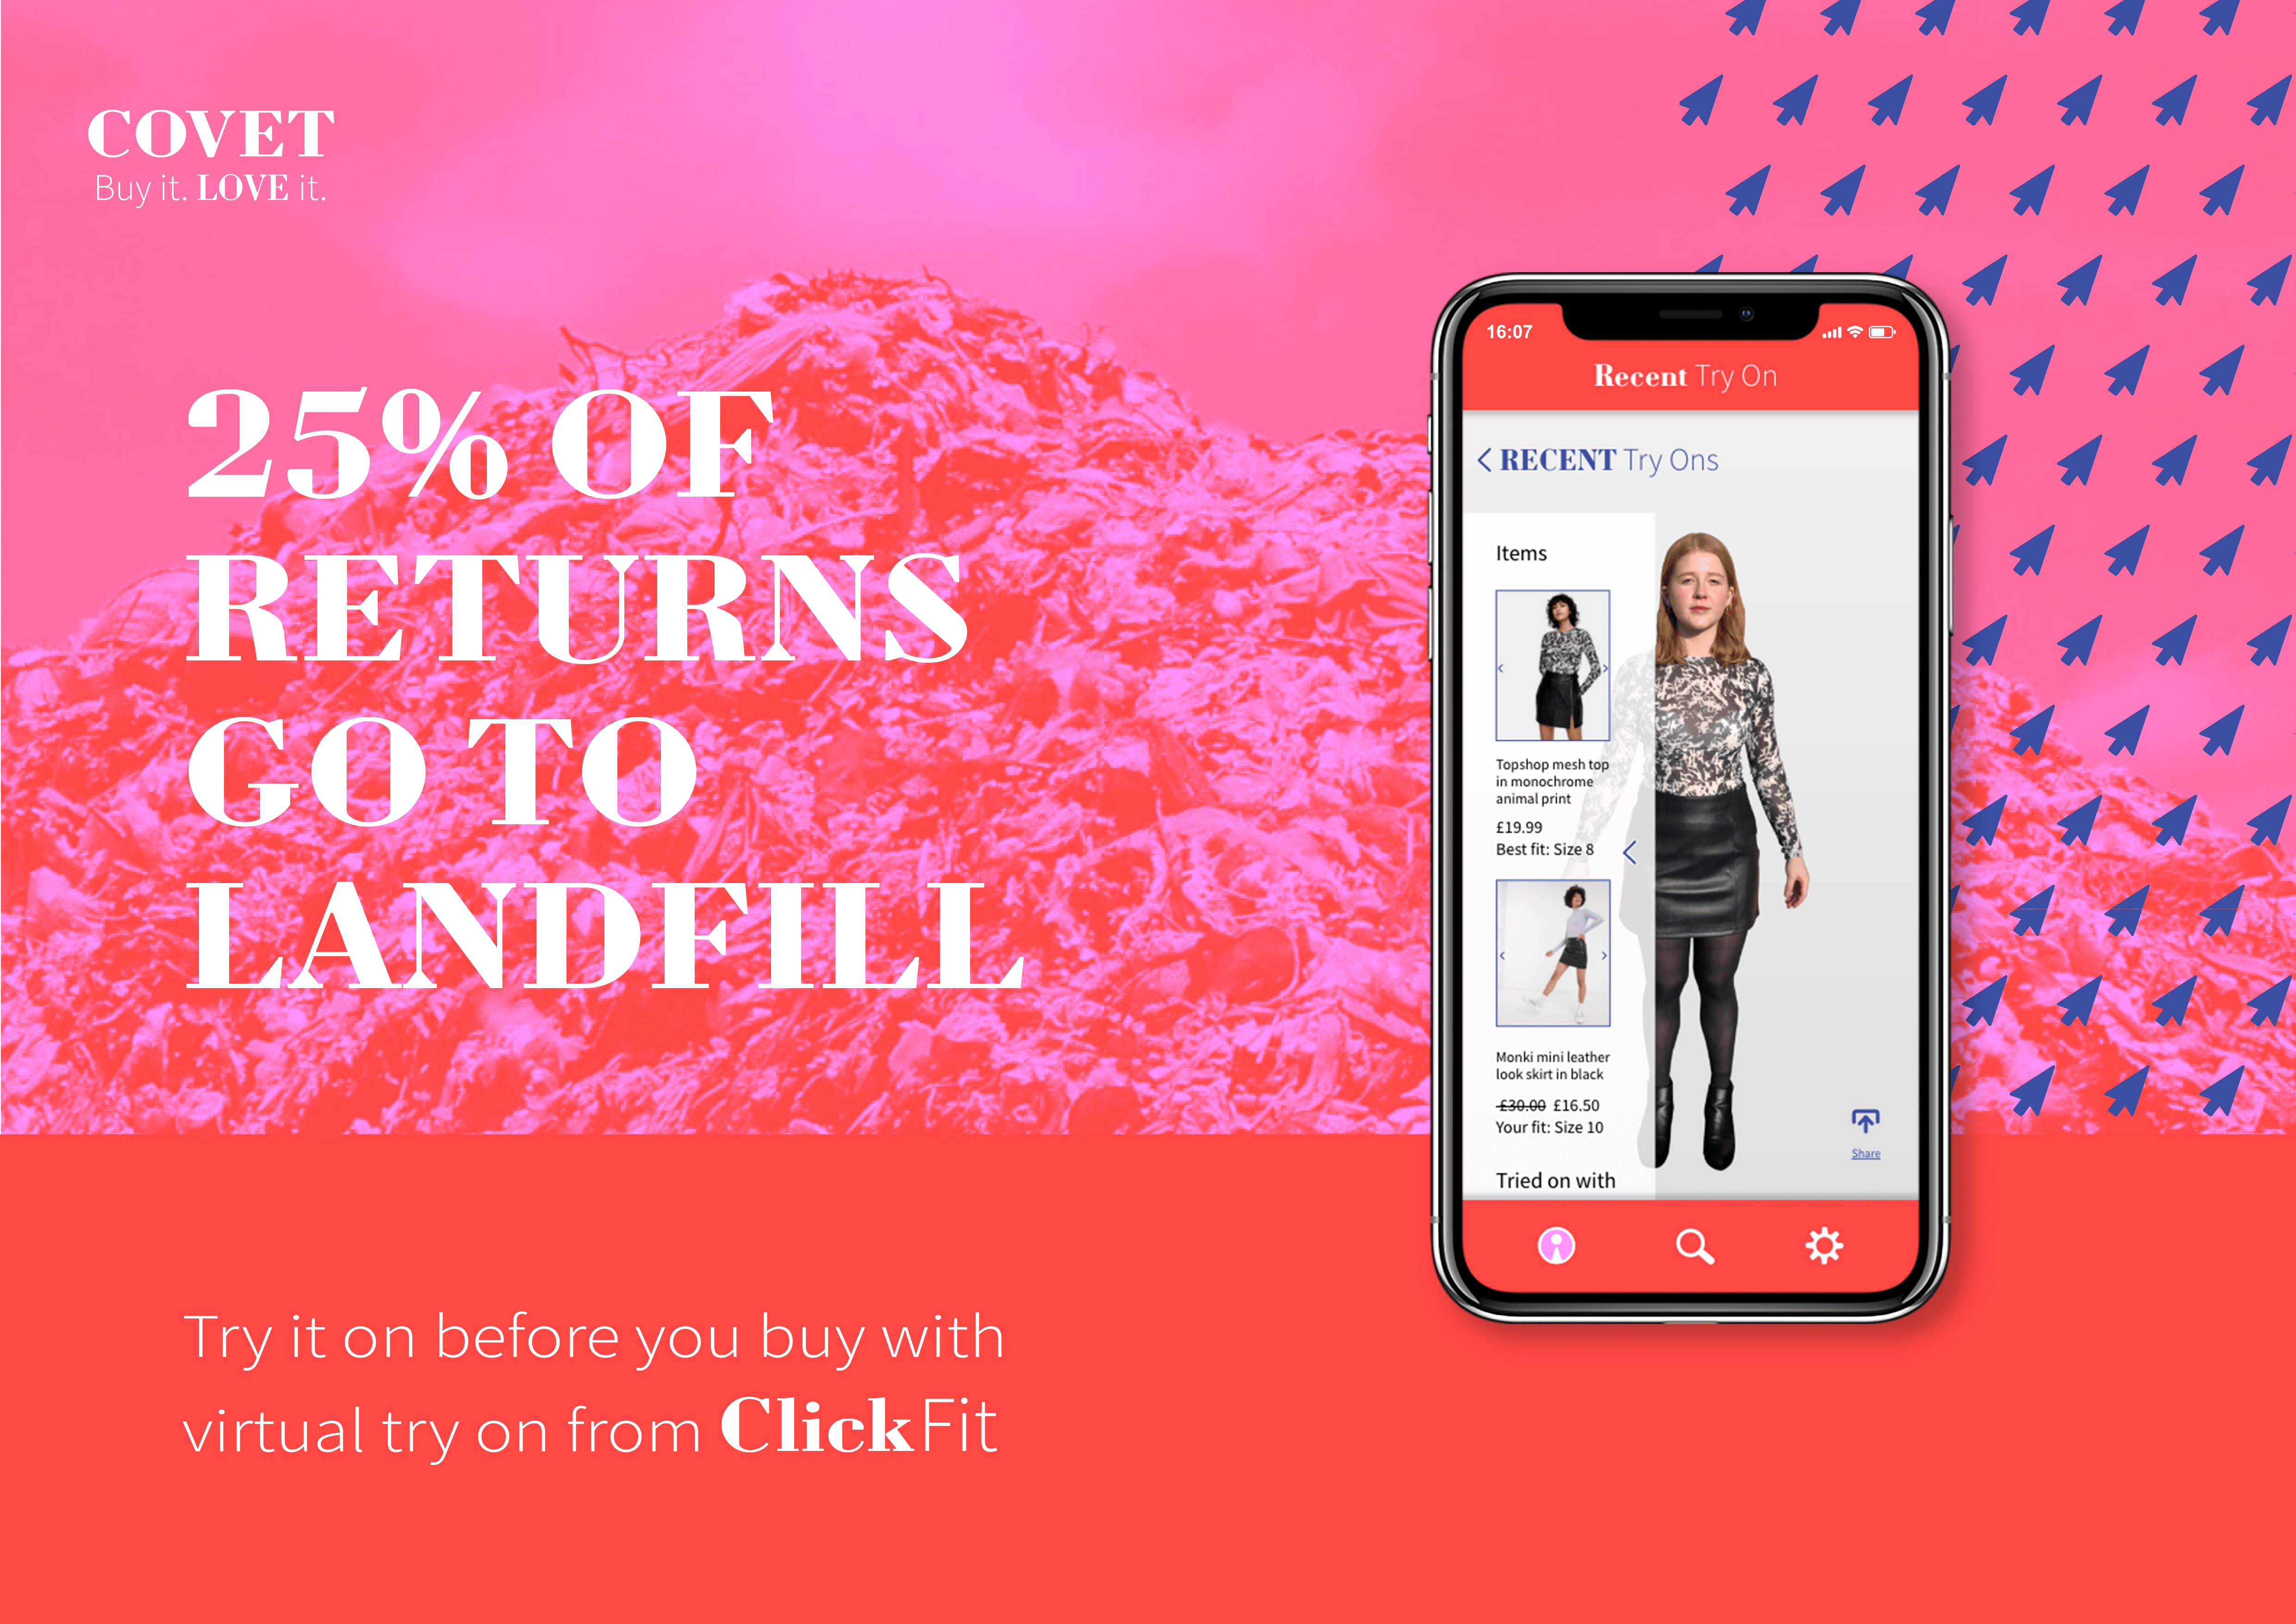 25% of returns are sent to landfill. ClickFit, the virtual try on app by Covet lets you try on clothes before you order, reducing waste and saving time.